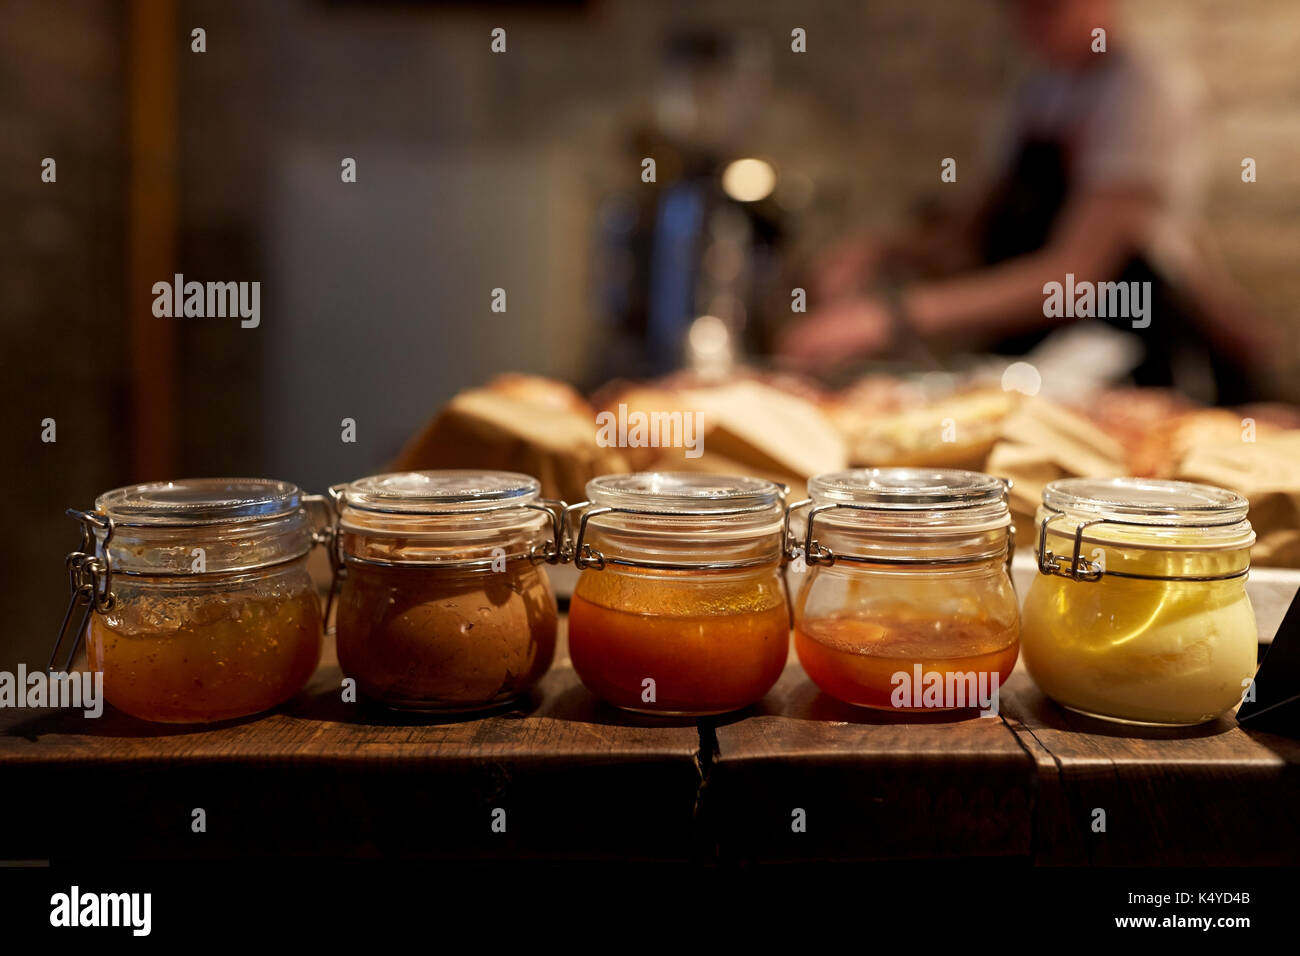 jars with craft jam or sauce at grocery store - Stock Image